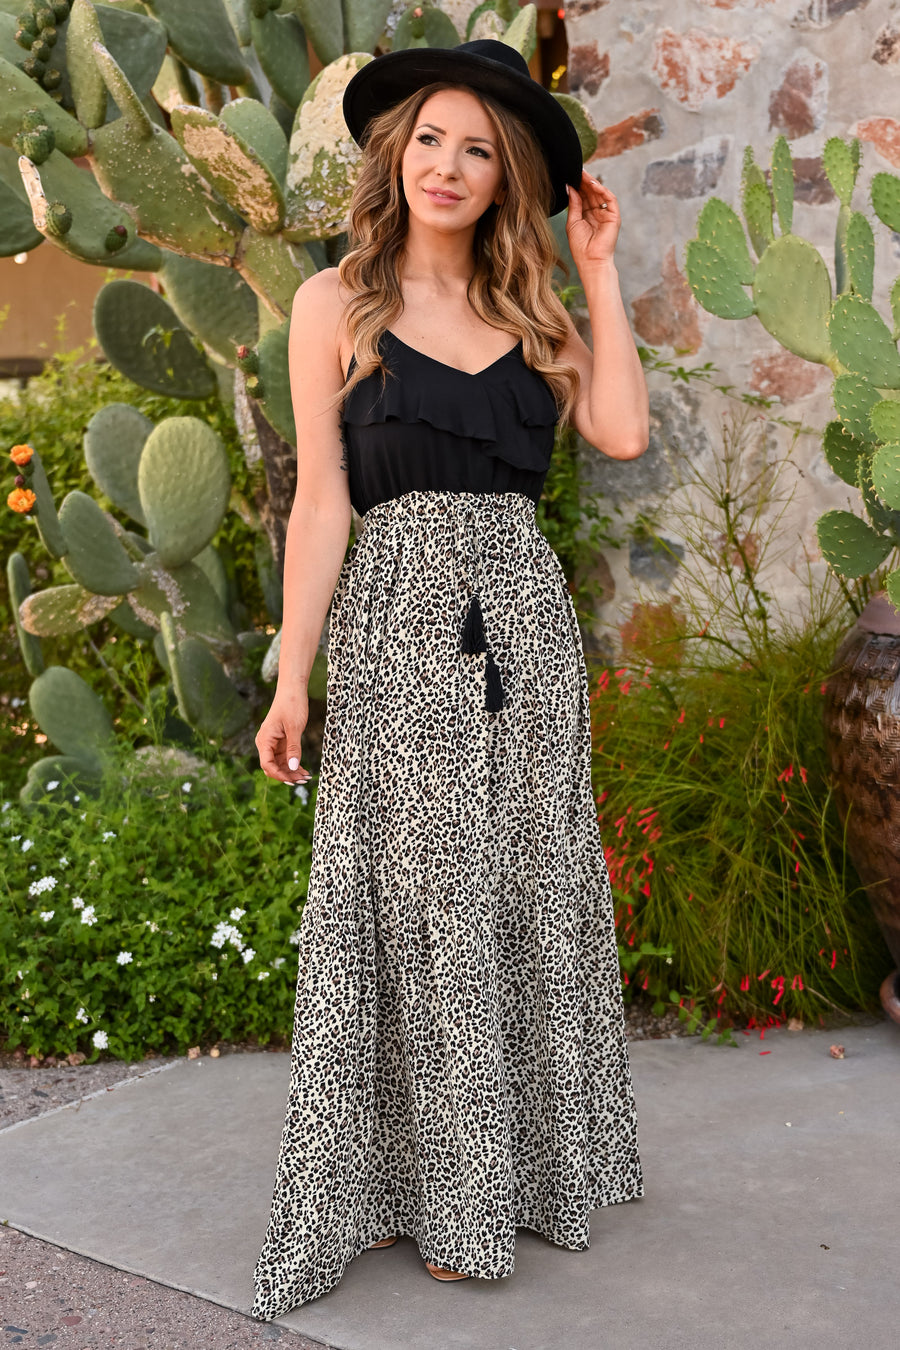 Wild Side Maxi Dress - Leopard womens trendy long dress with spaghetti straps and tie front closet candy side